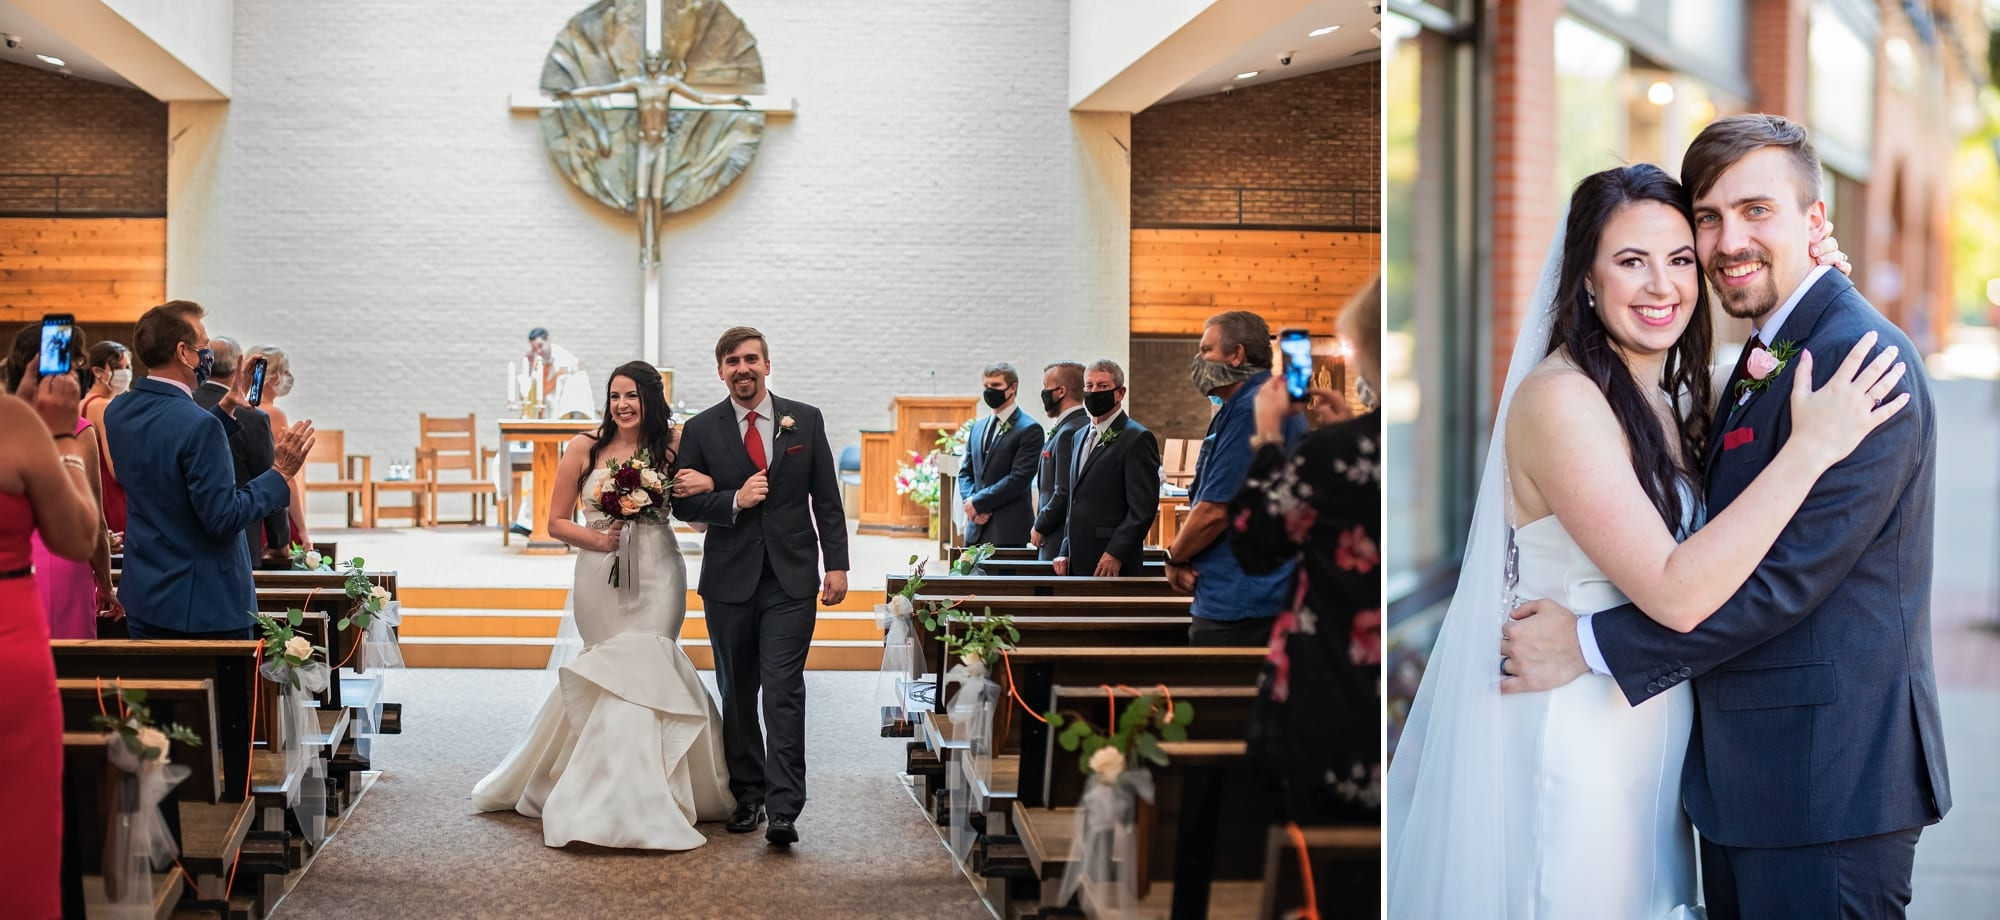 Wedding photography for Erin and Adam's wedding ceremony in Minnetonka, Minnesota.